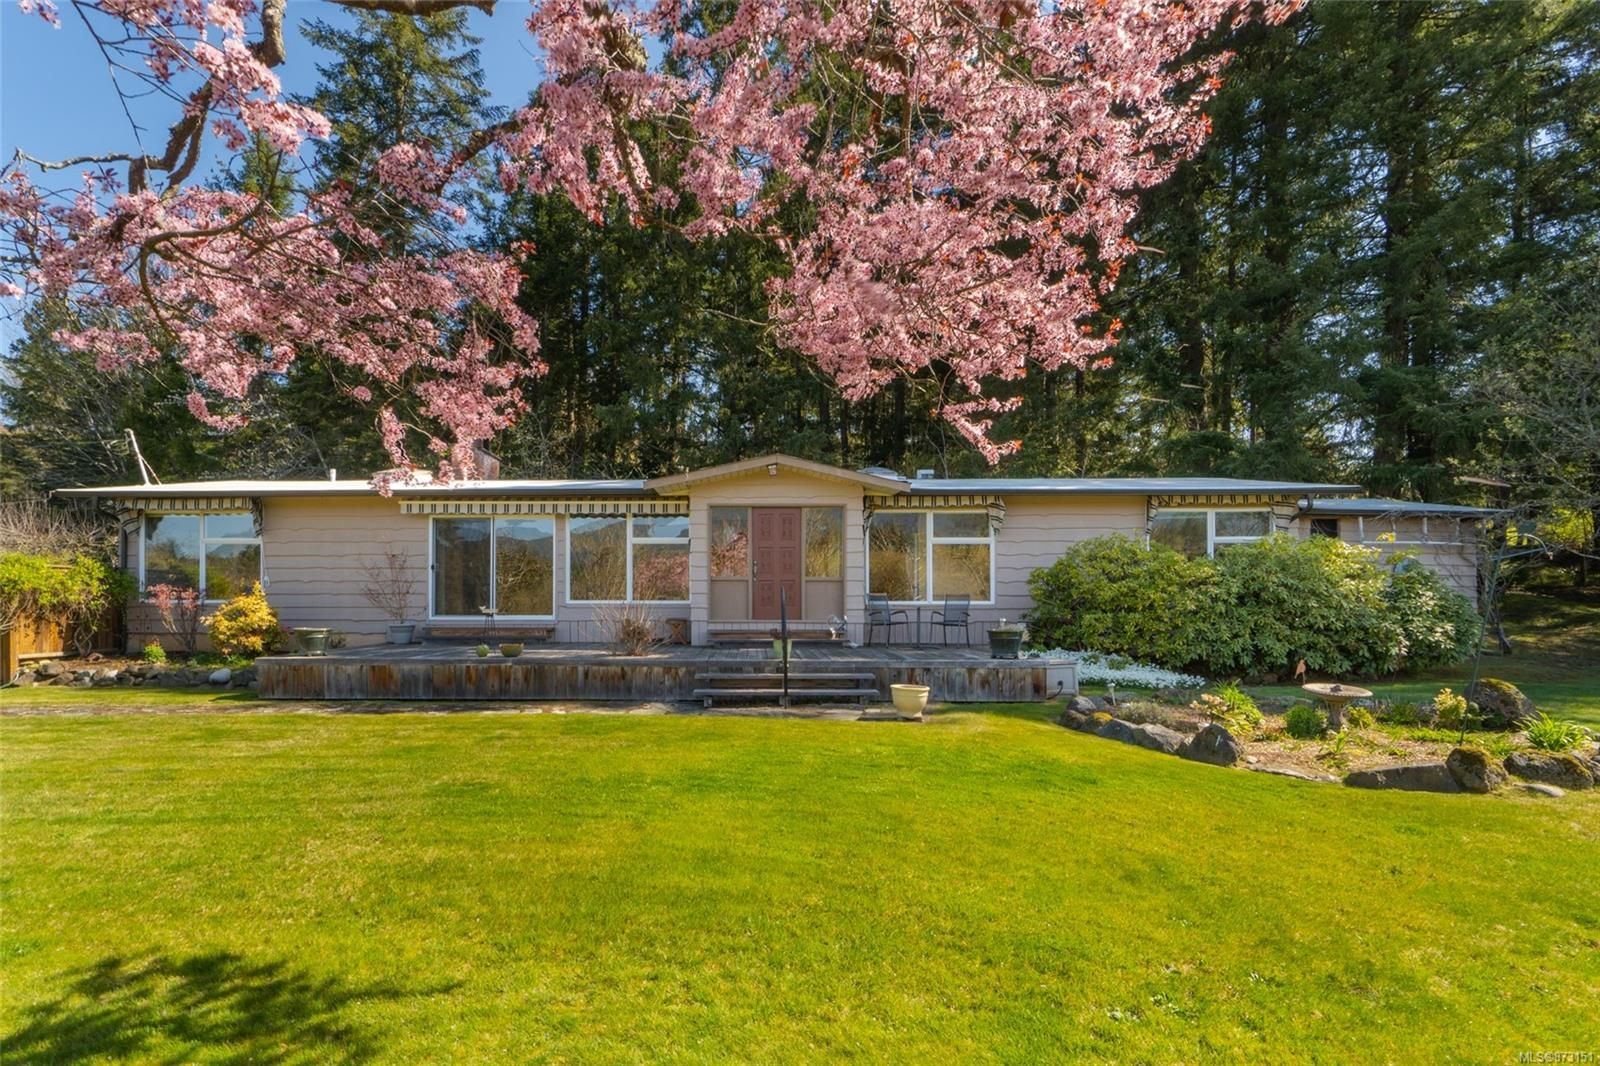 Main Photo: 2312 Maxey Rd in : Na South Jingle Pot House for sale (Nanaimo)  : MLS®# 873151